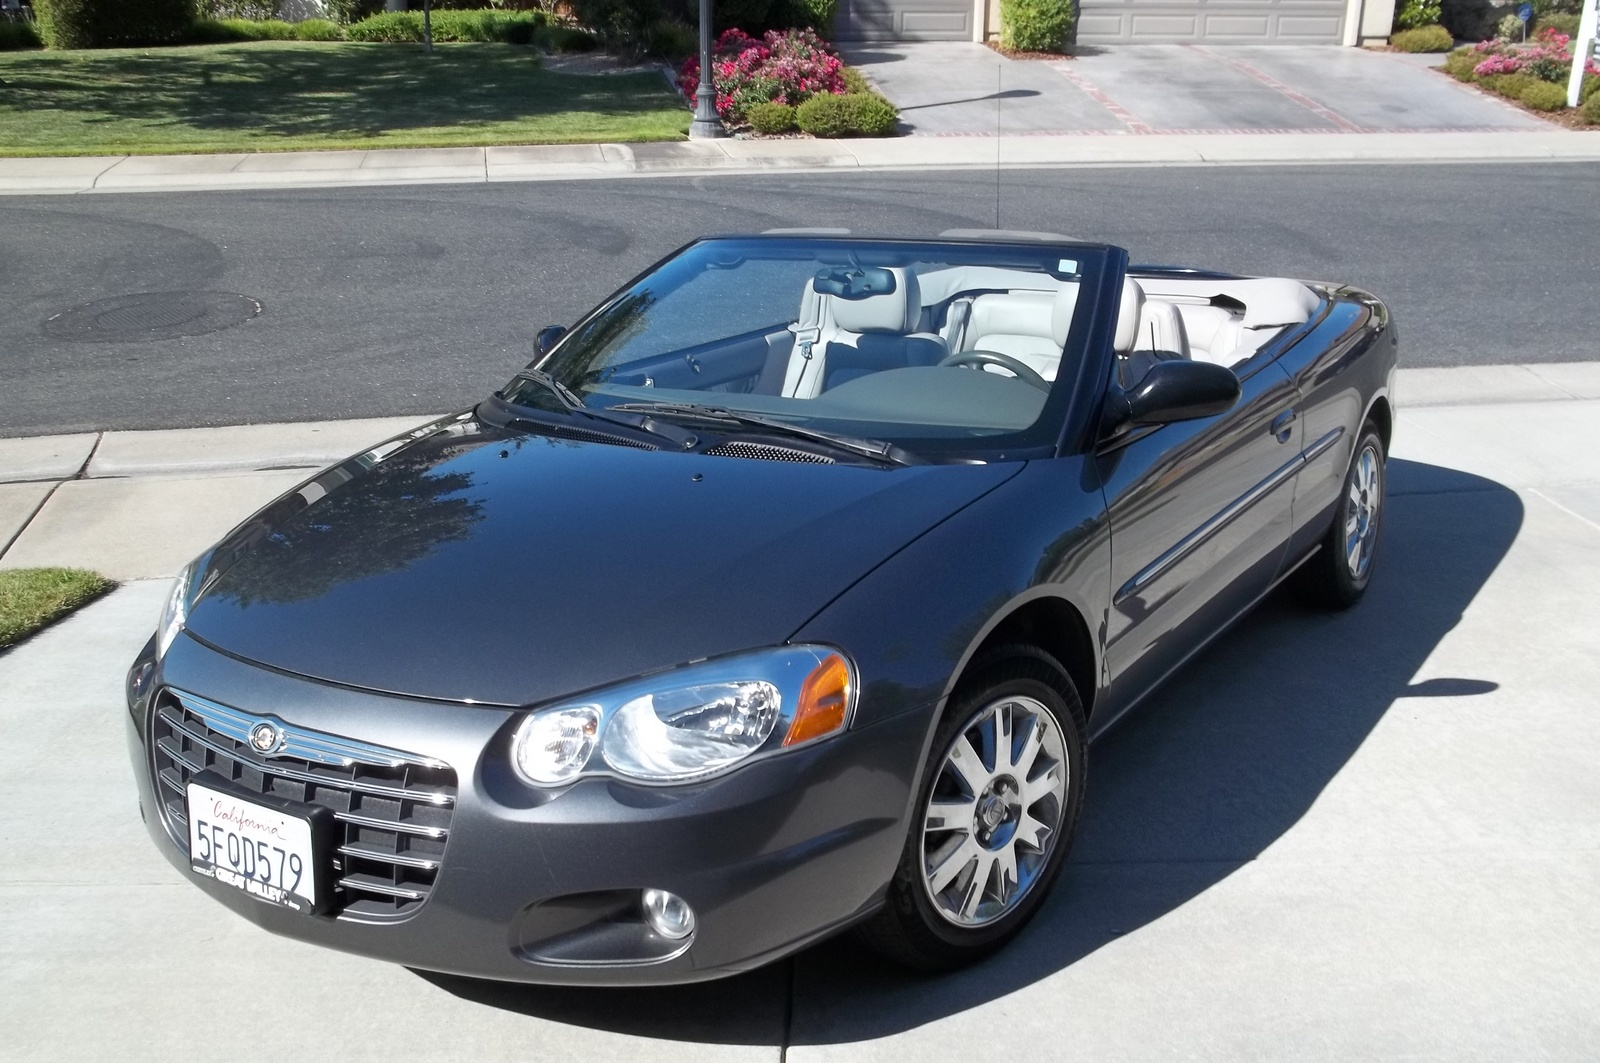 Chrysler Sebring Limited Convertible Pic